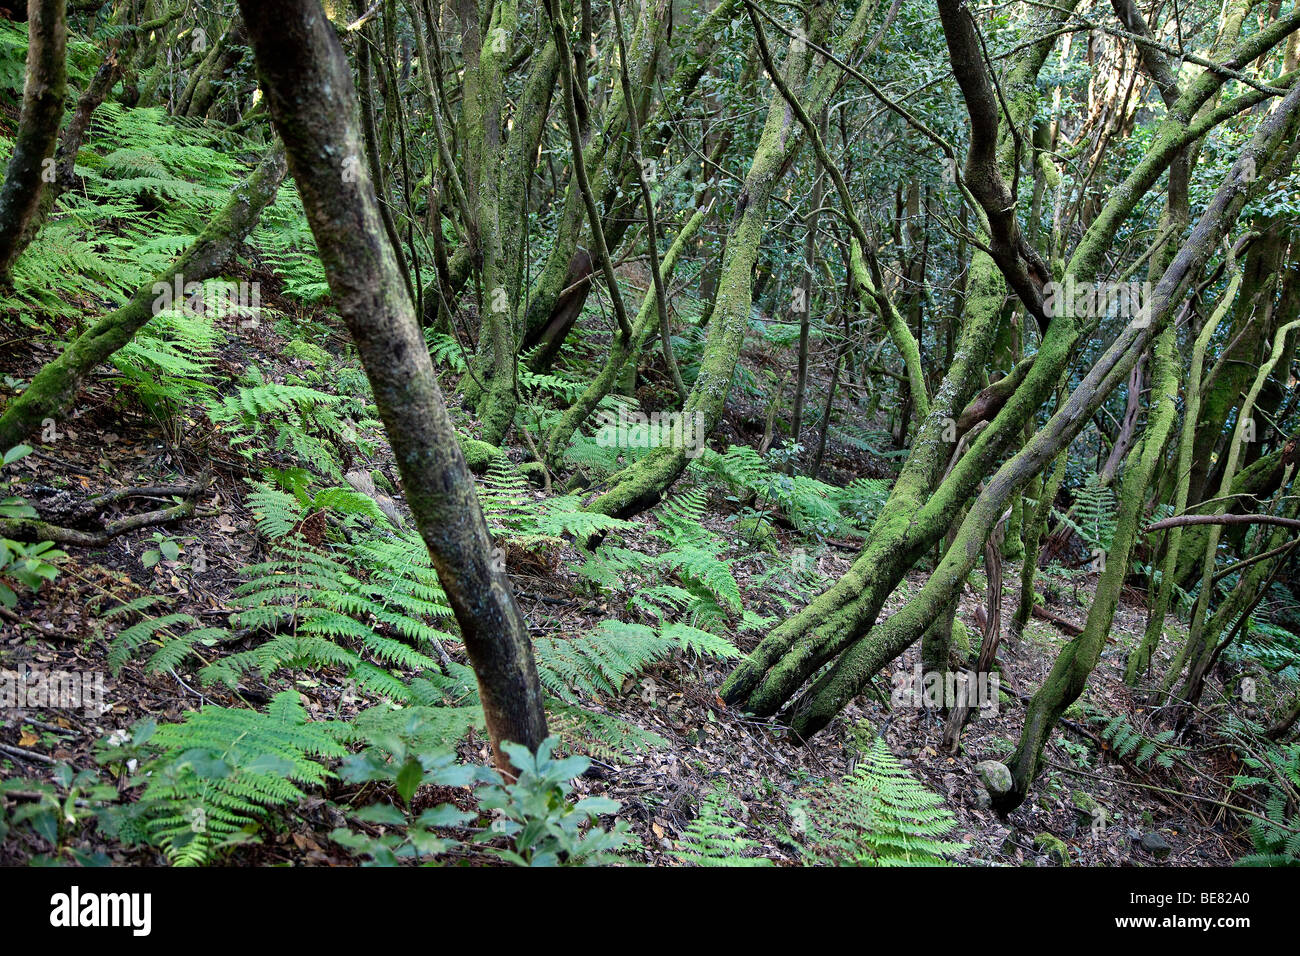 Thick laurel forest at Garajonay National Park, La Gomera, Canary Islands, Spain, Europe - Stock Image